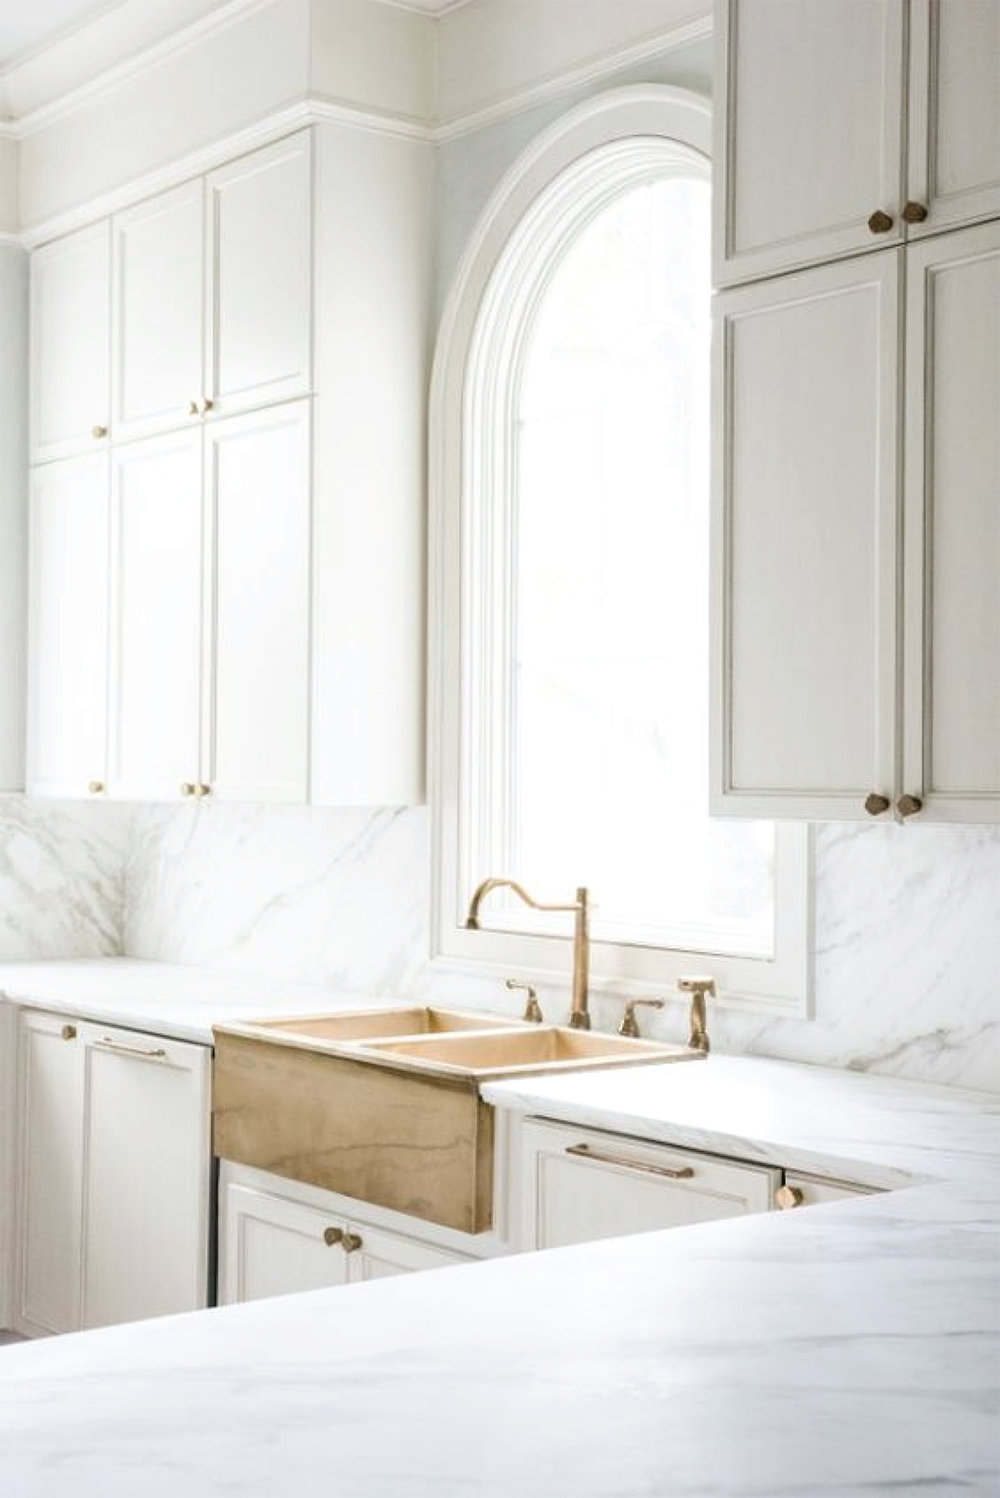 White Kitchen Cabinets | Brass Sink | Akin Design Studio Blog